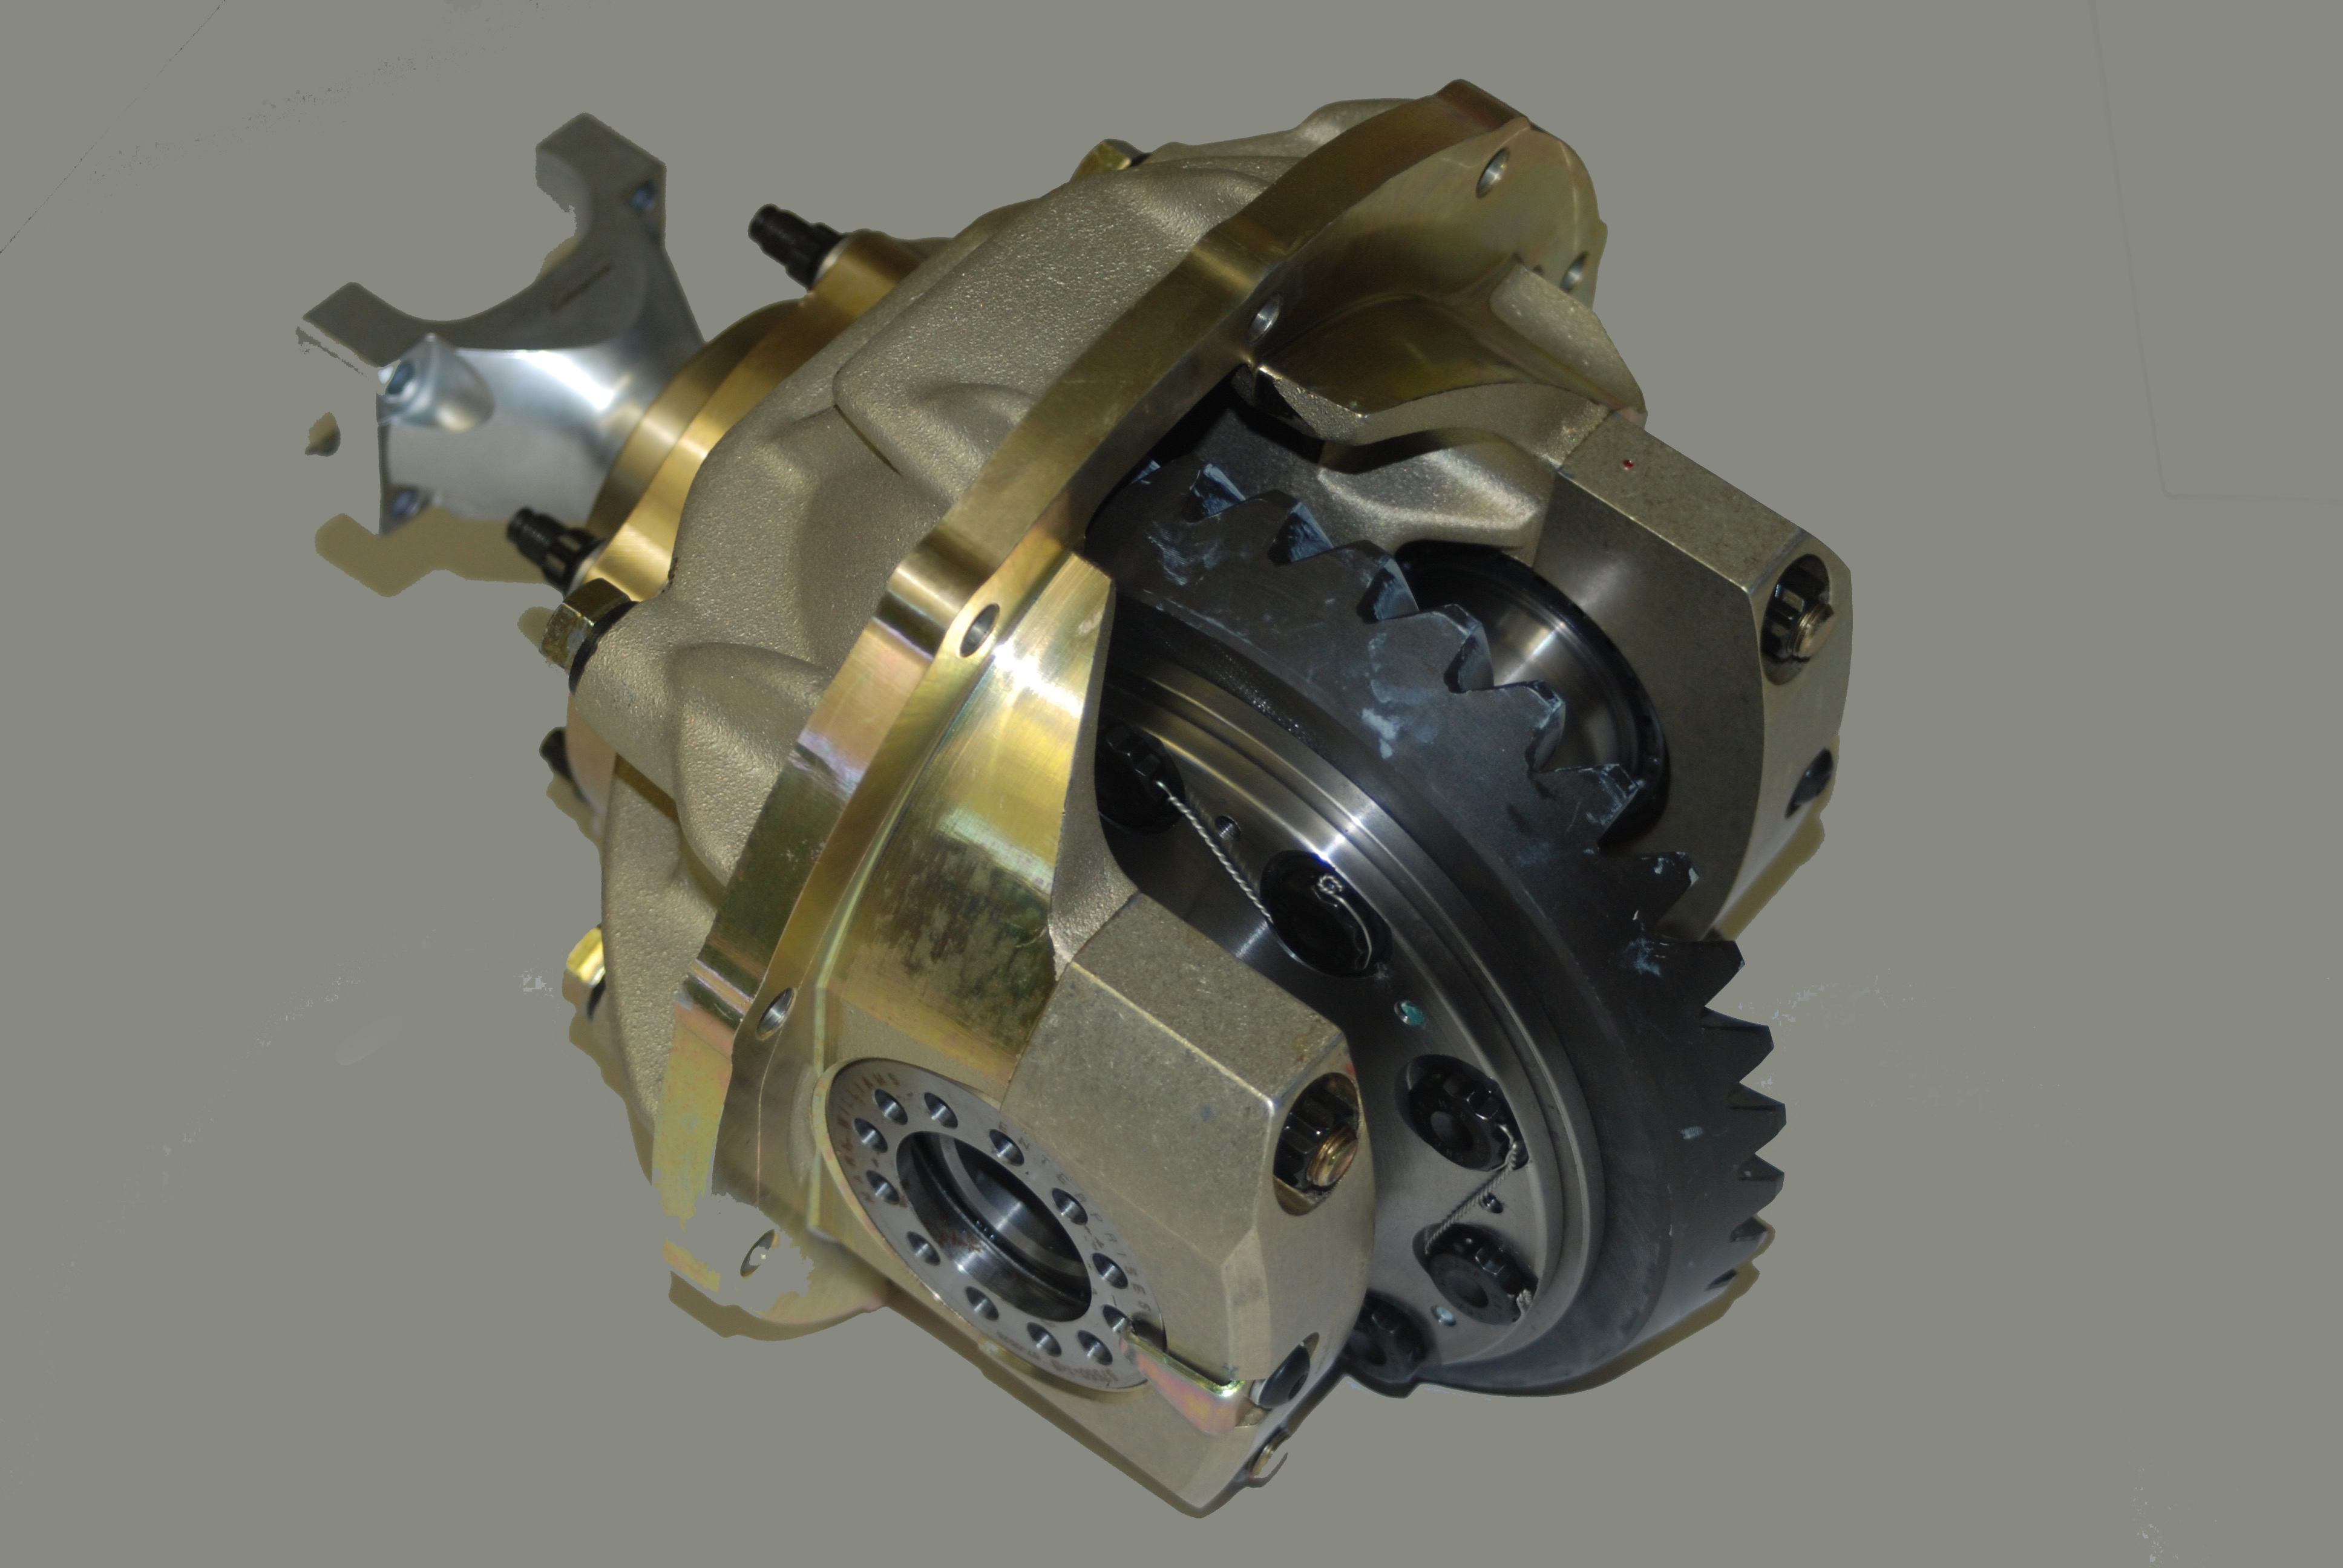 How to Select Gear Ratio Combos for Better Performance - Part 2